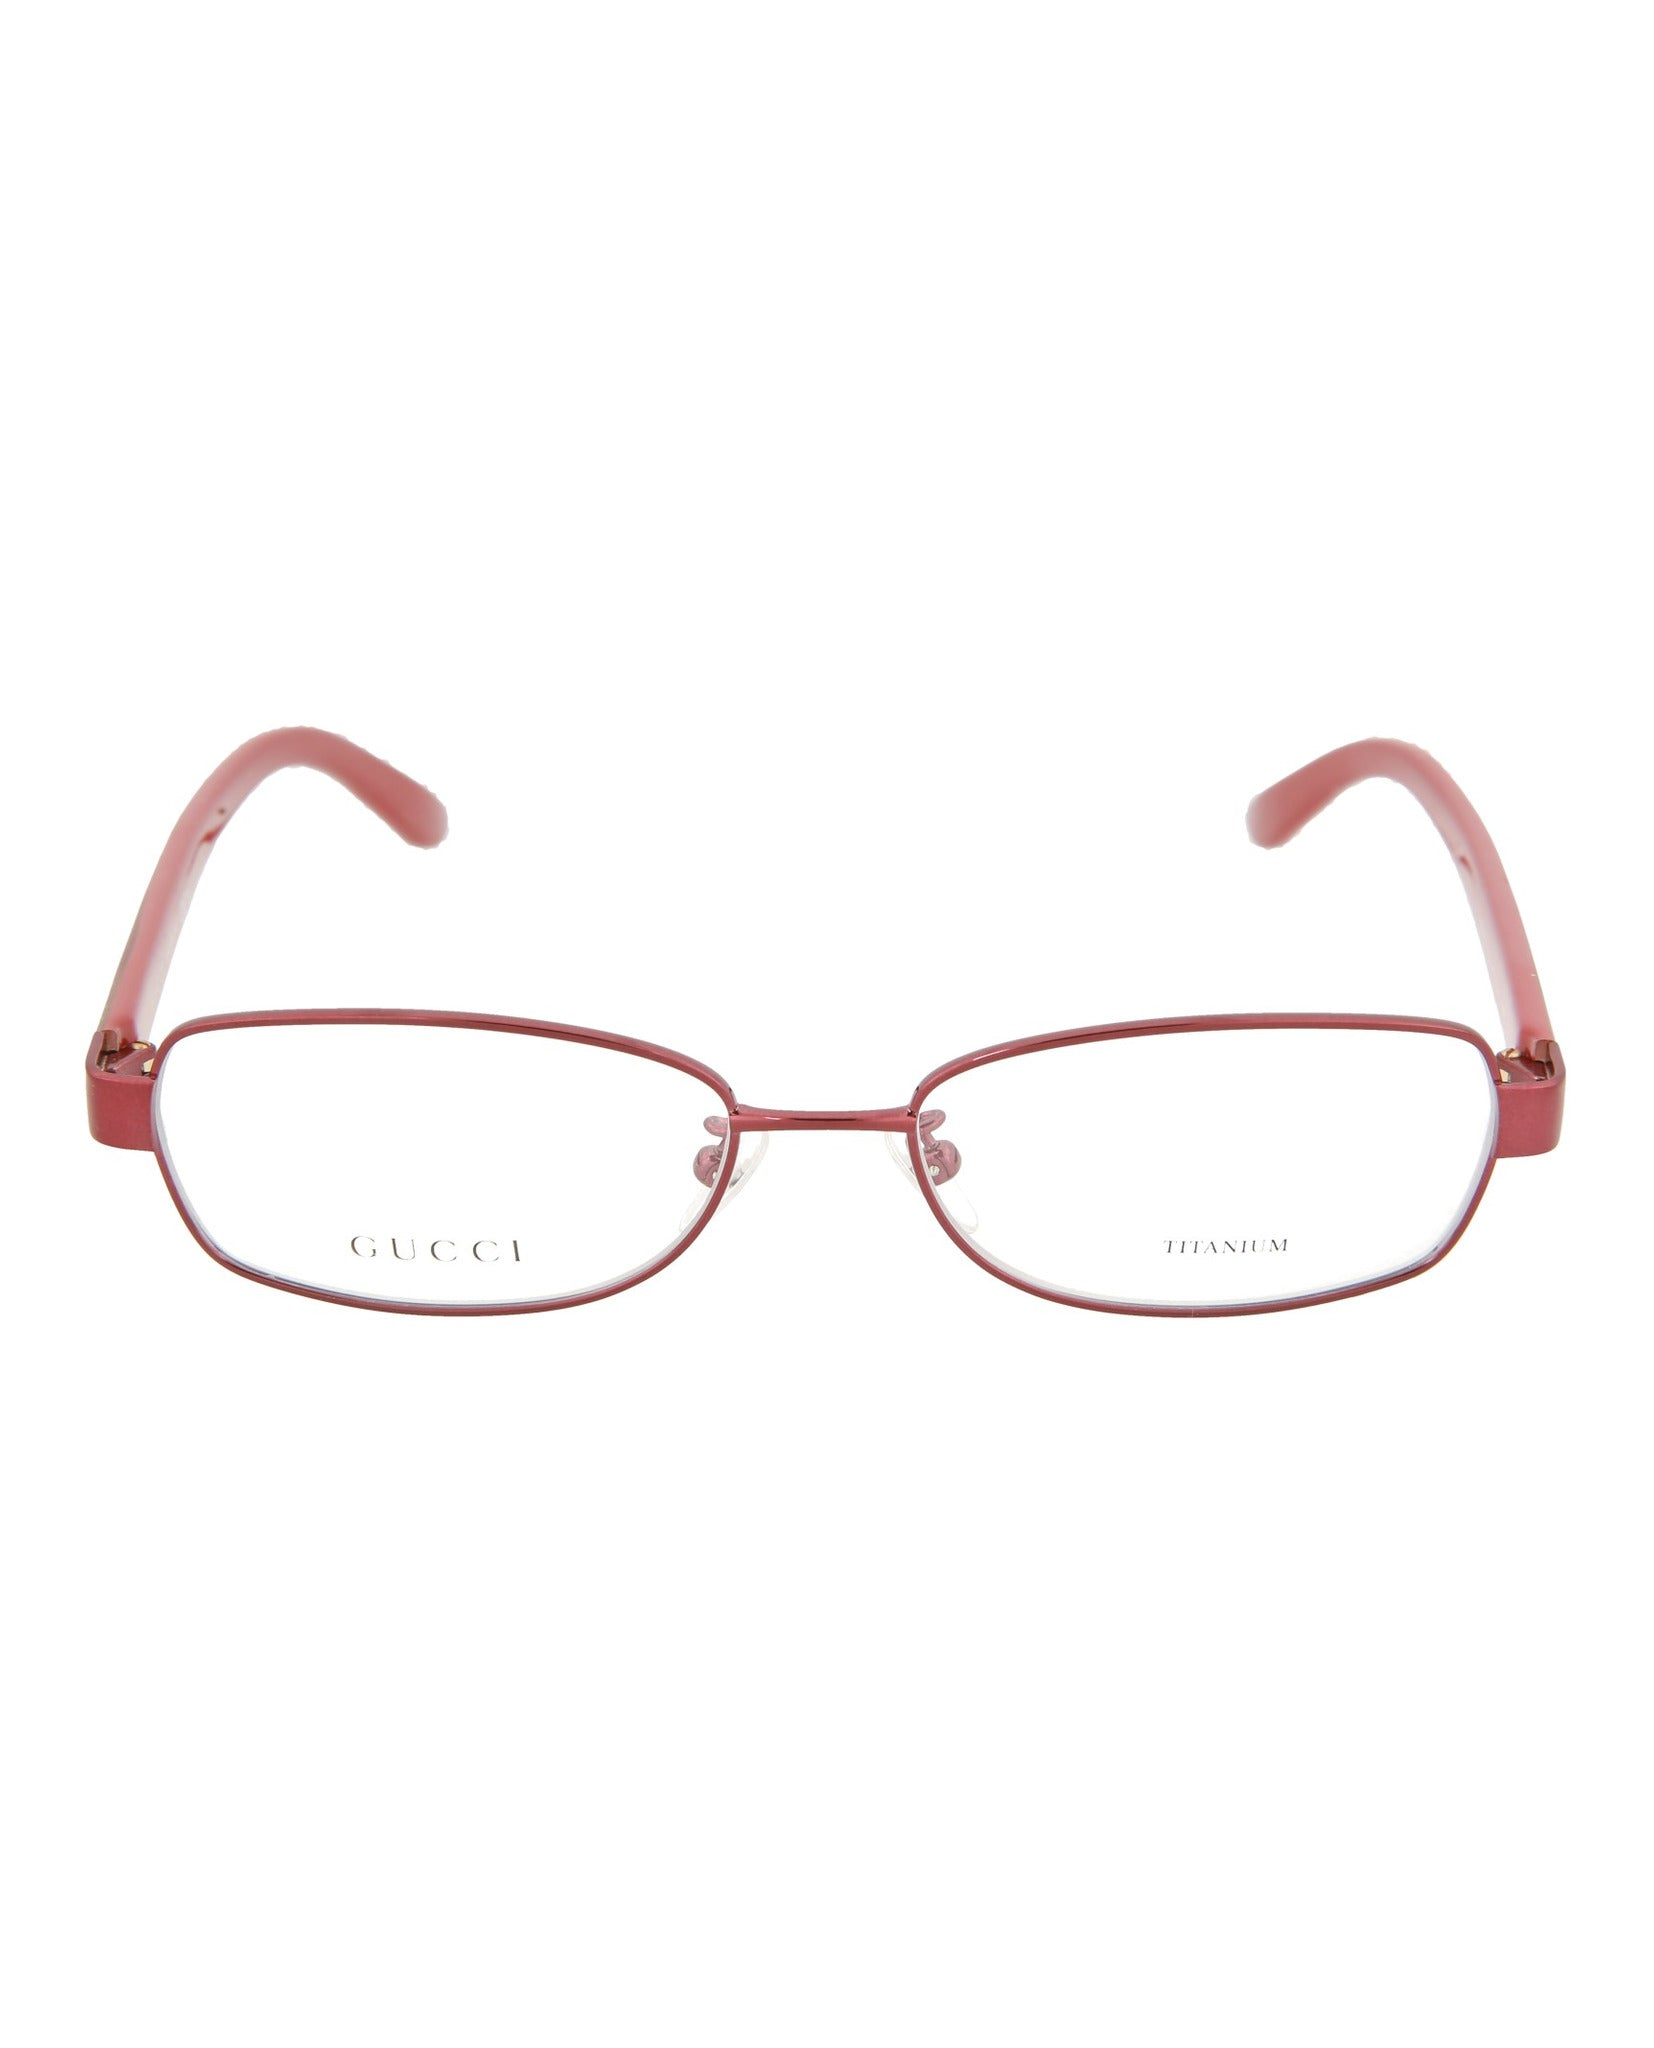 e4025eccdfd Gucci Round Oval Optical Frames – MadaLuxe Vault